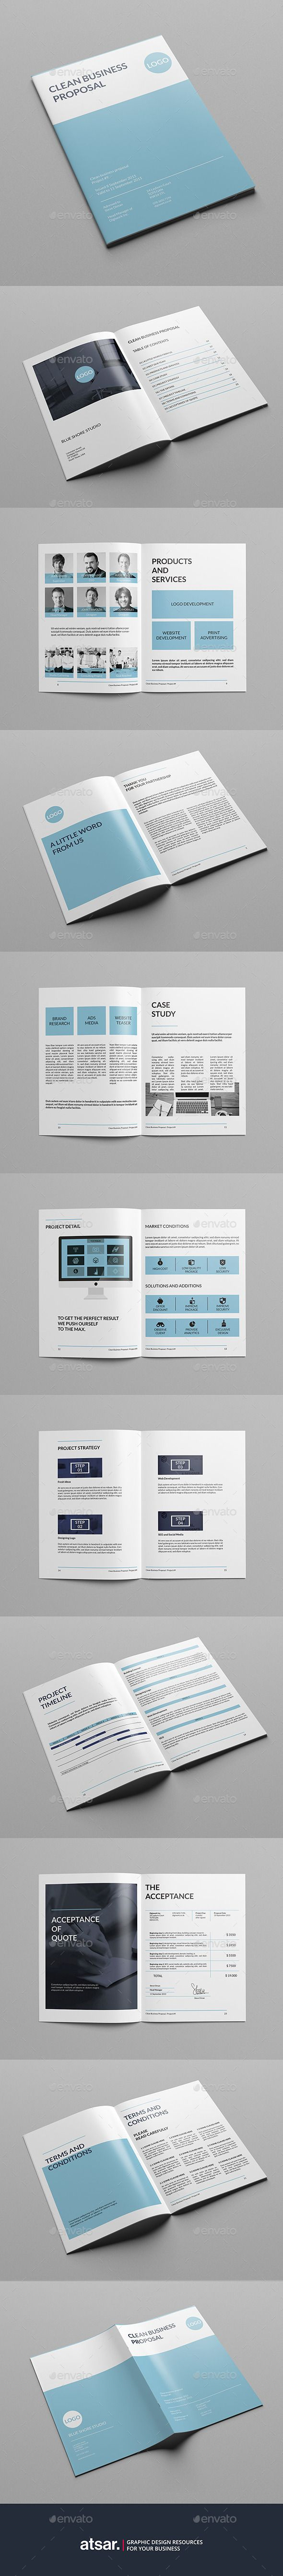 Clean Business Proposal Template #design Buy Now: http://graphicriver.net/item/clean-business-proposal/12853048?ref=ksioks